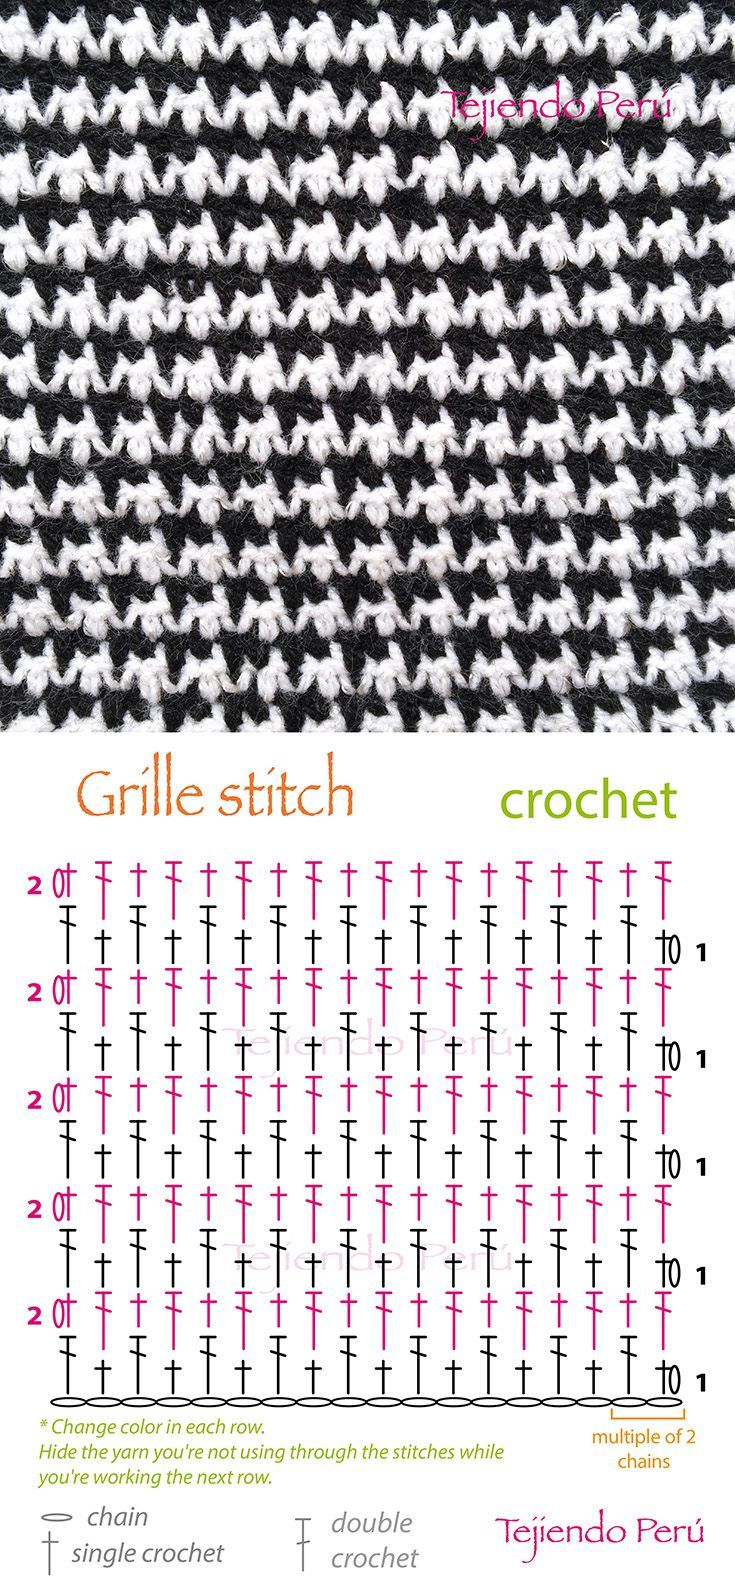 Crochet: grille stitch diagram (pattern or chart)! | Pinterest ...